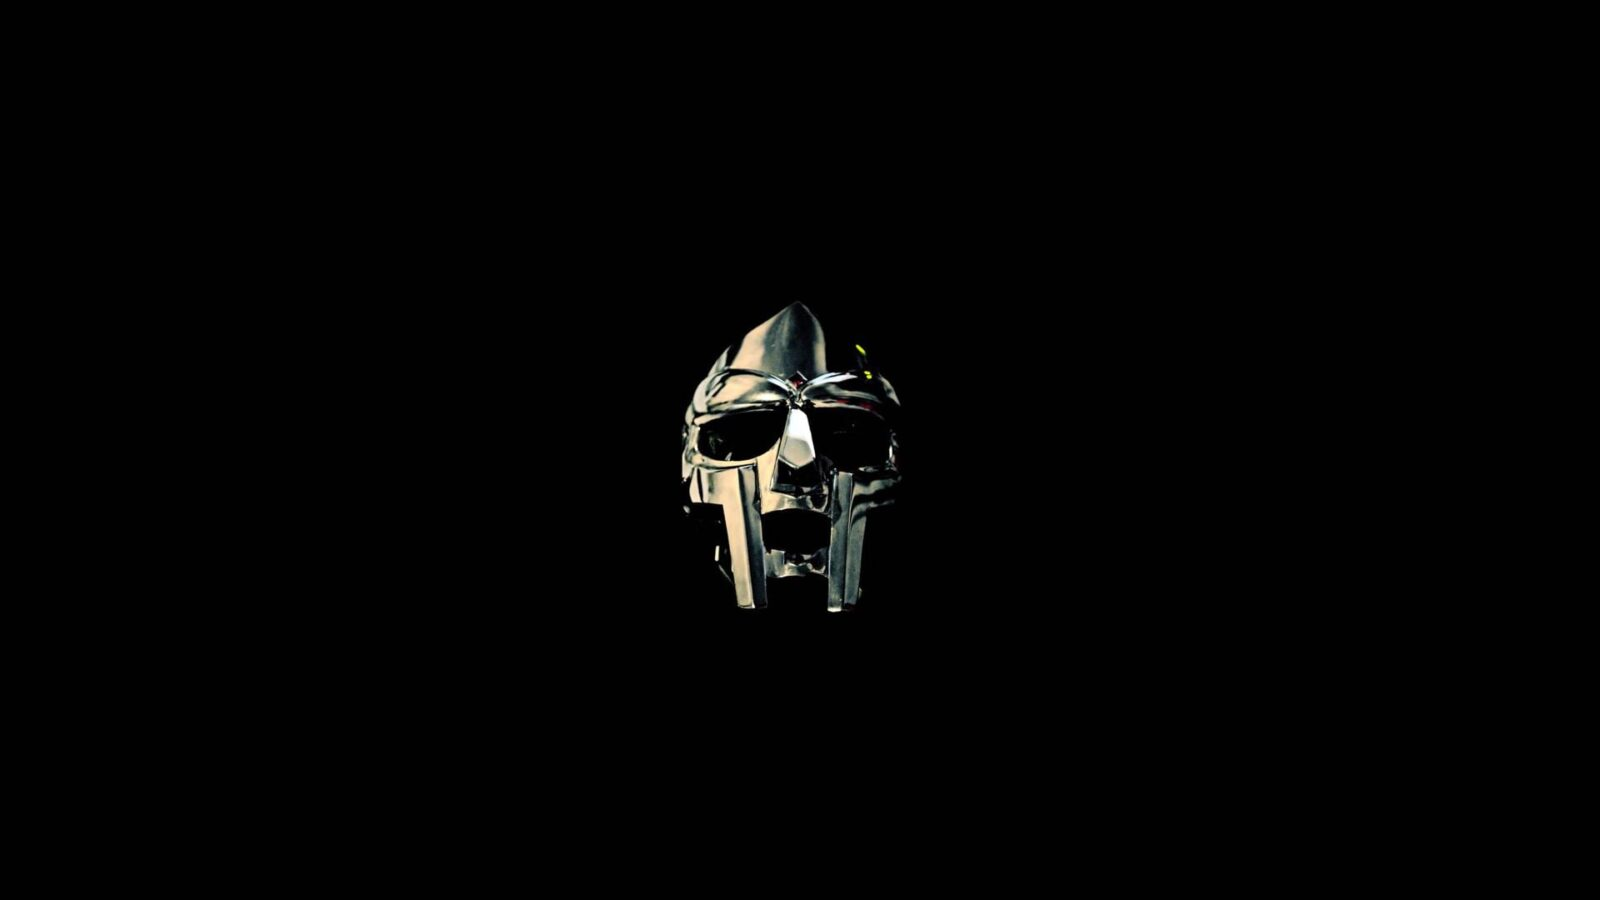 mf doom wallpaper 9 - photo #3